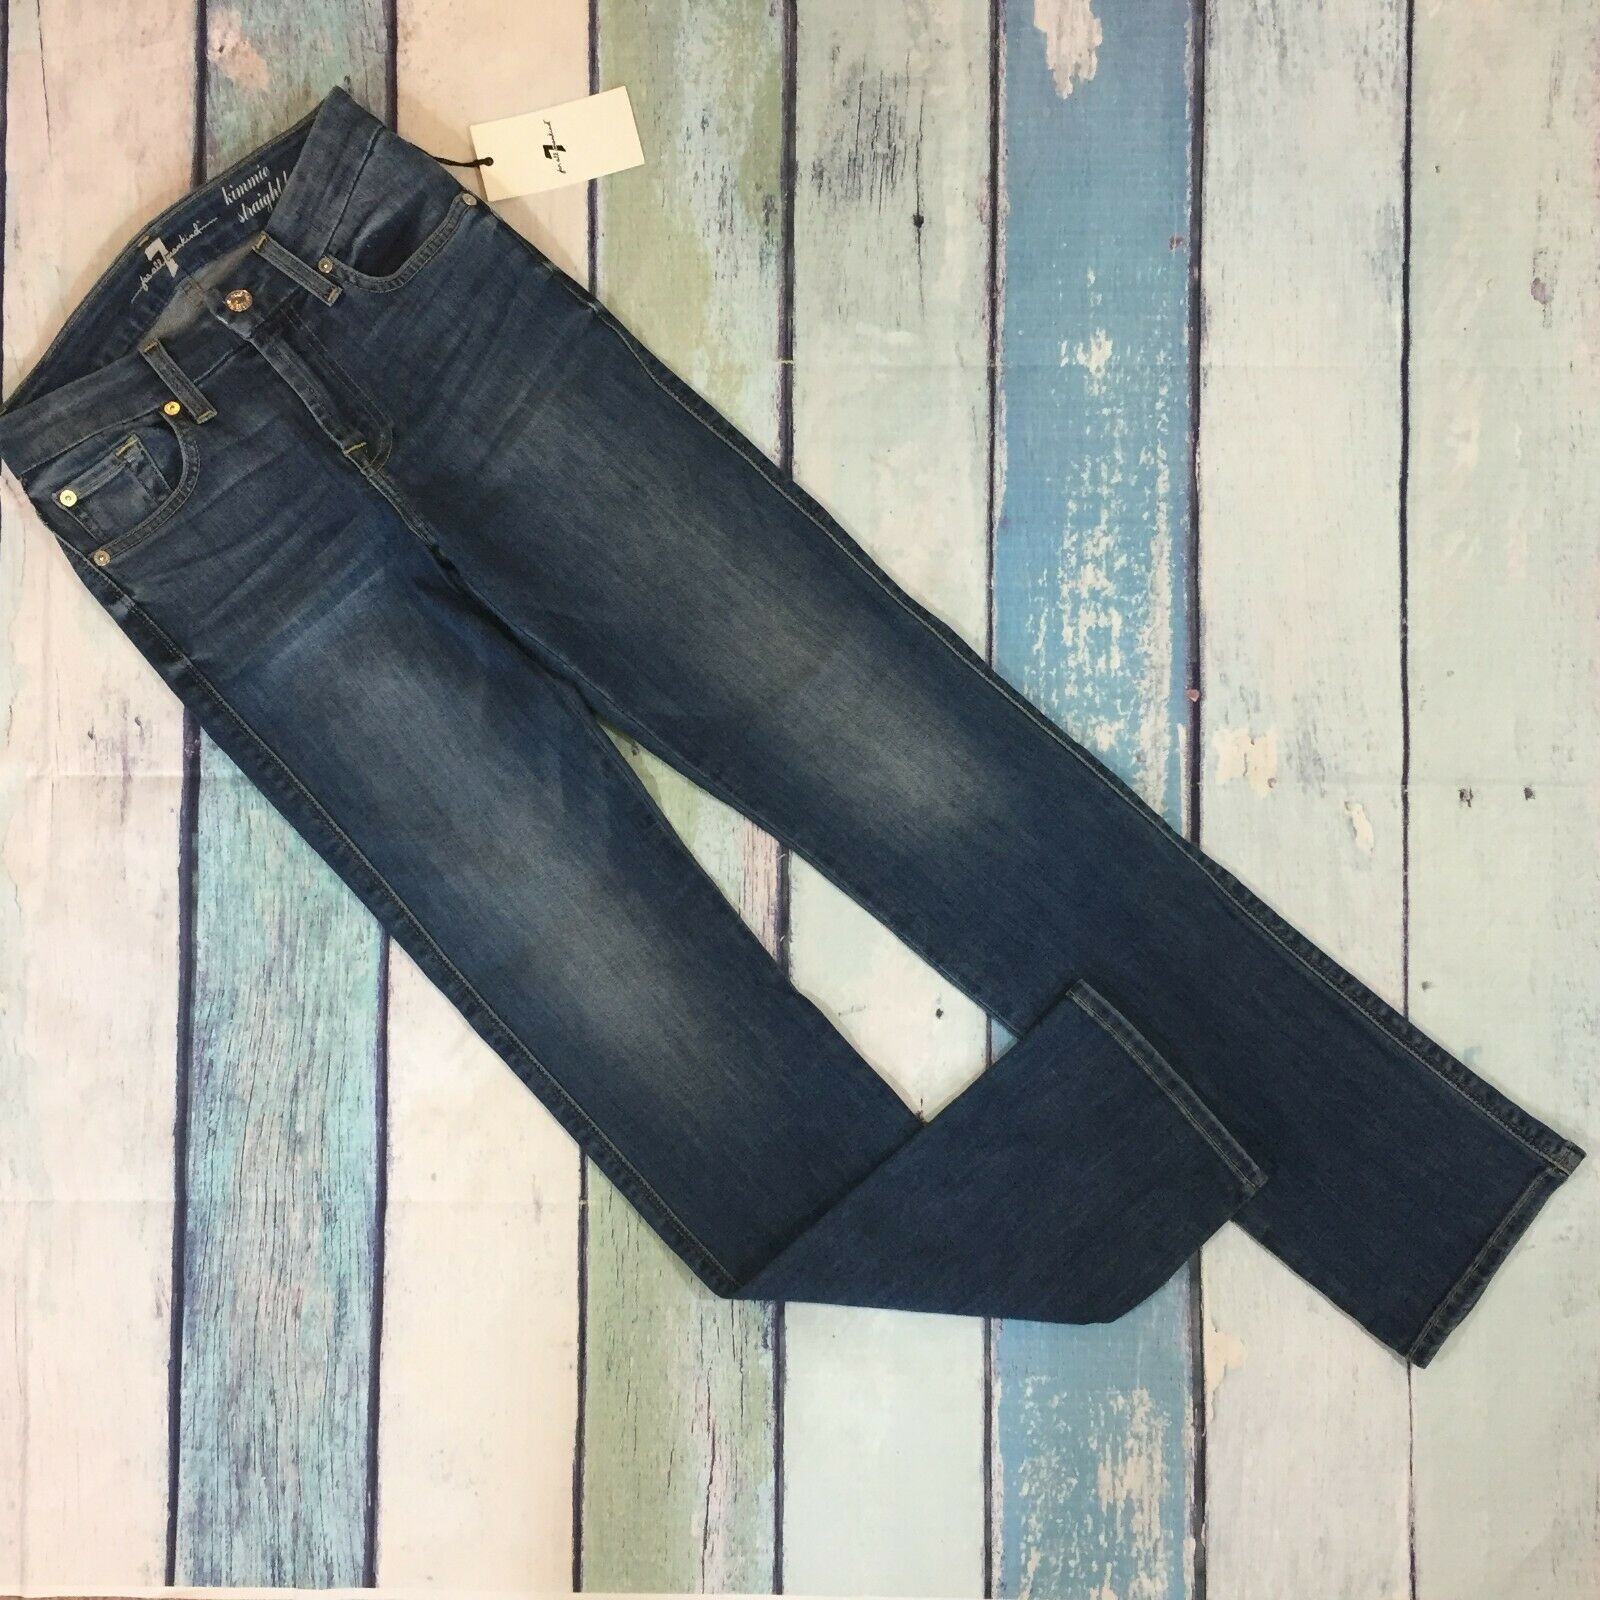 NWT 7 for all Mankind Kimmie Straight Leg Jeans 24